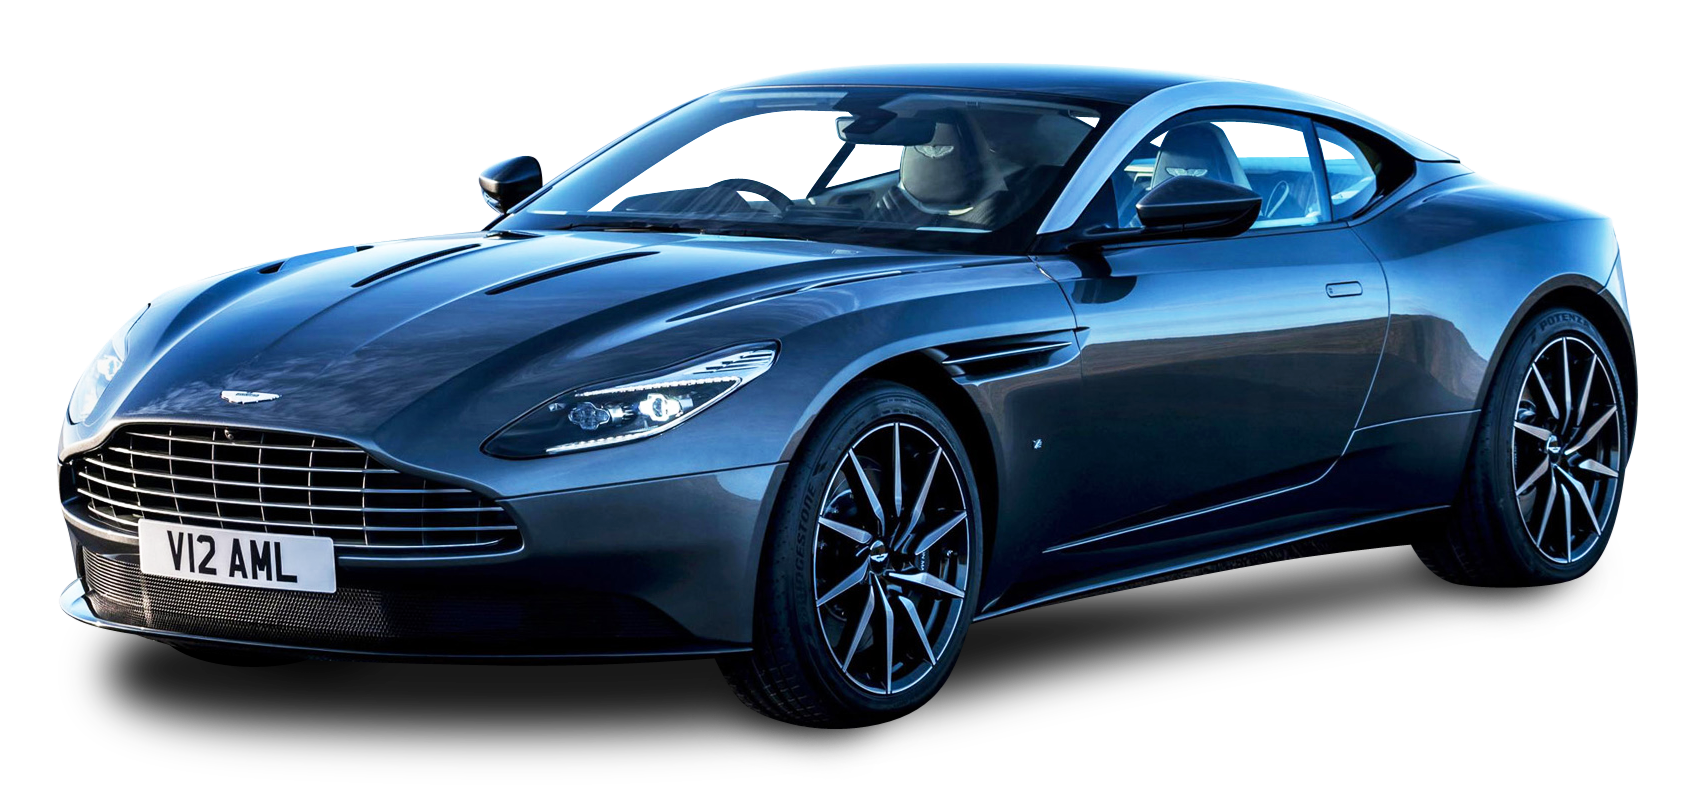 Aston Martin Blue PNG Image, Luxury Sport Car 27470